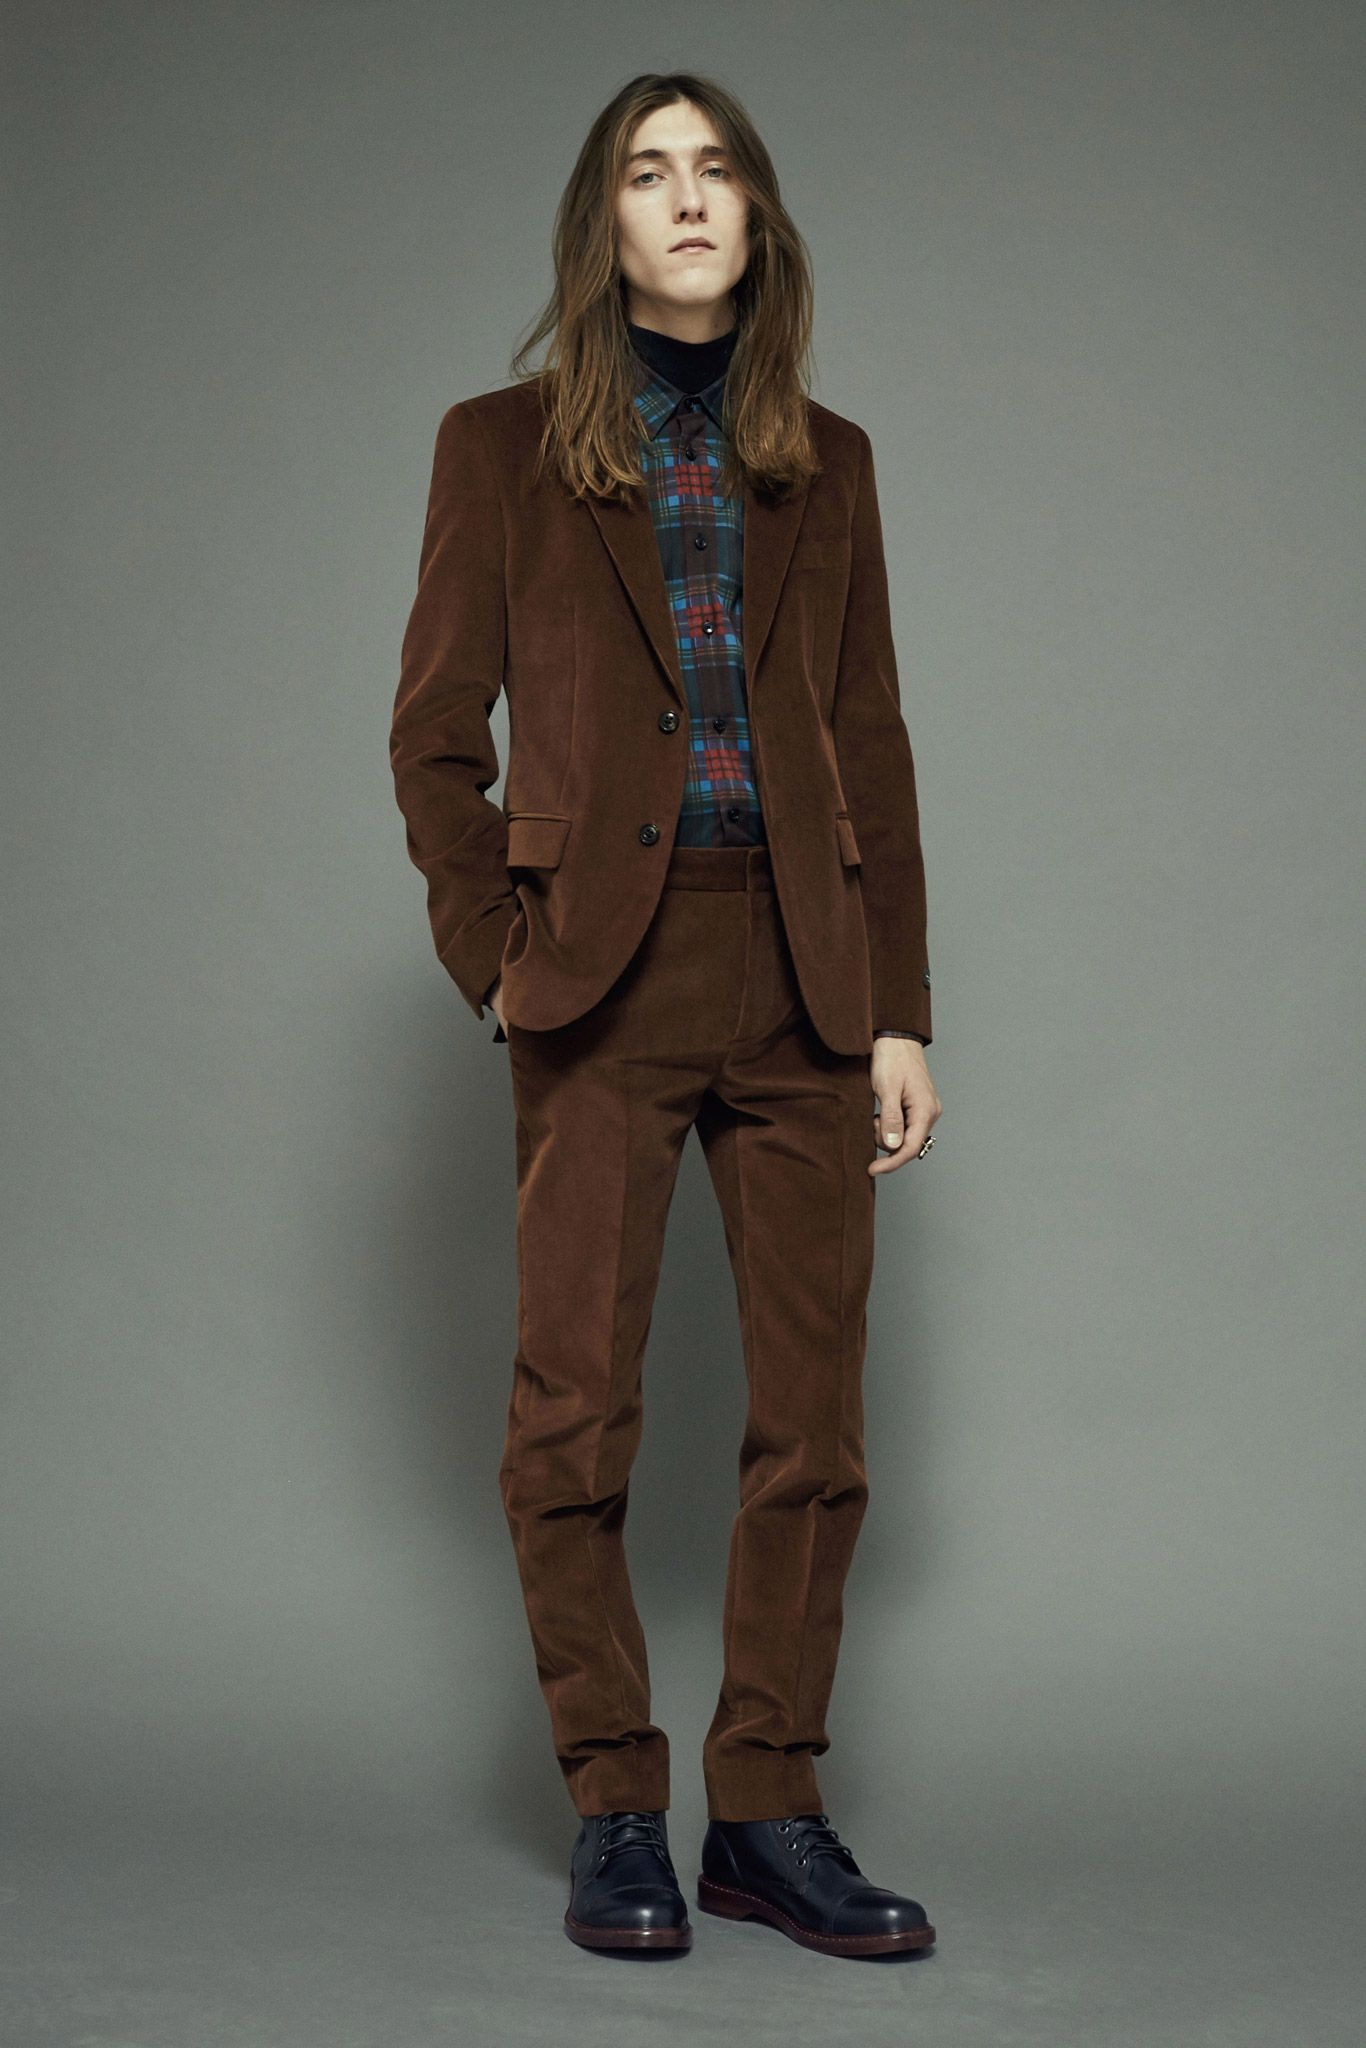 1000  images about Suits that are corduroy on Pinterest | Corduroy